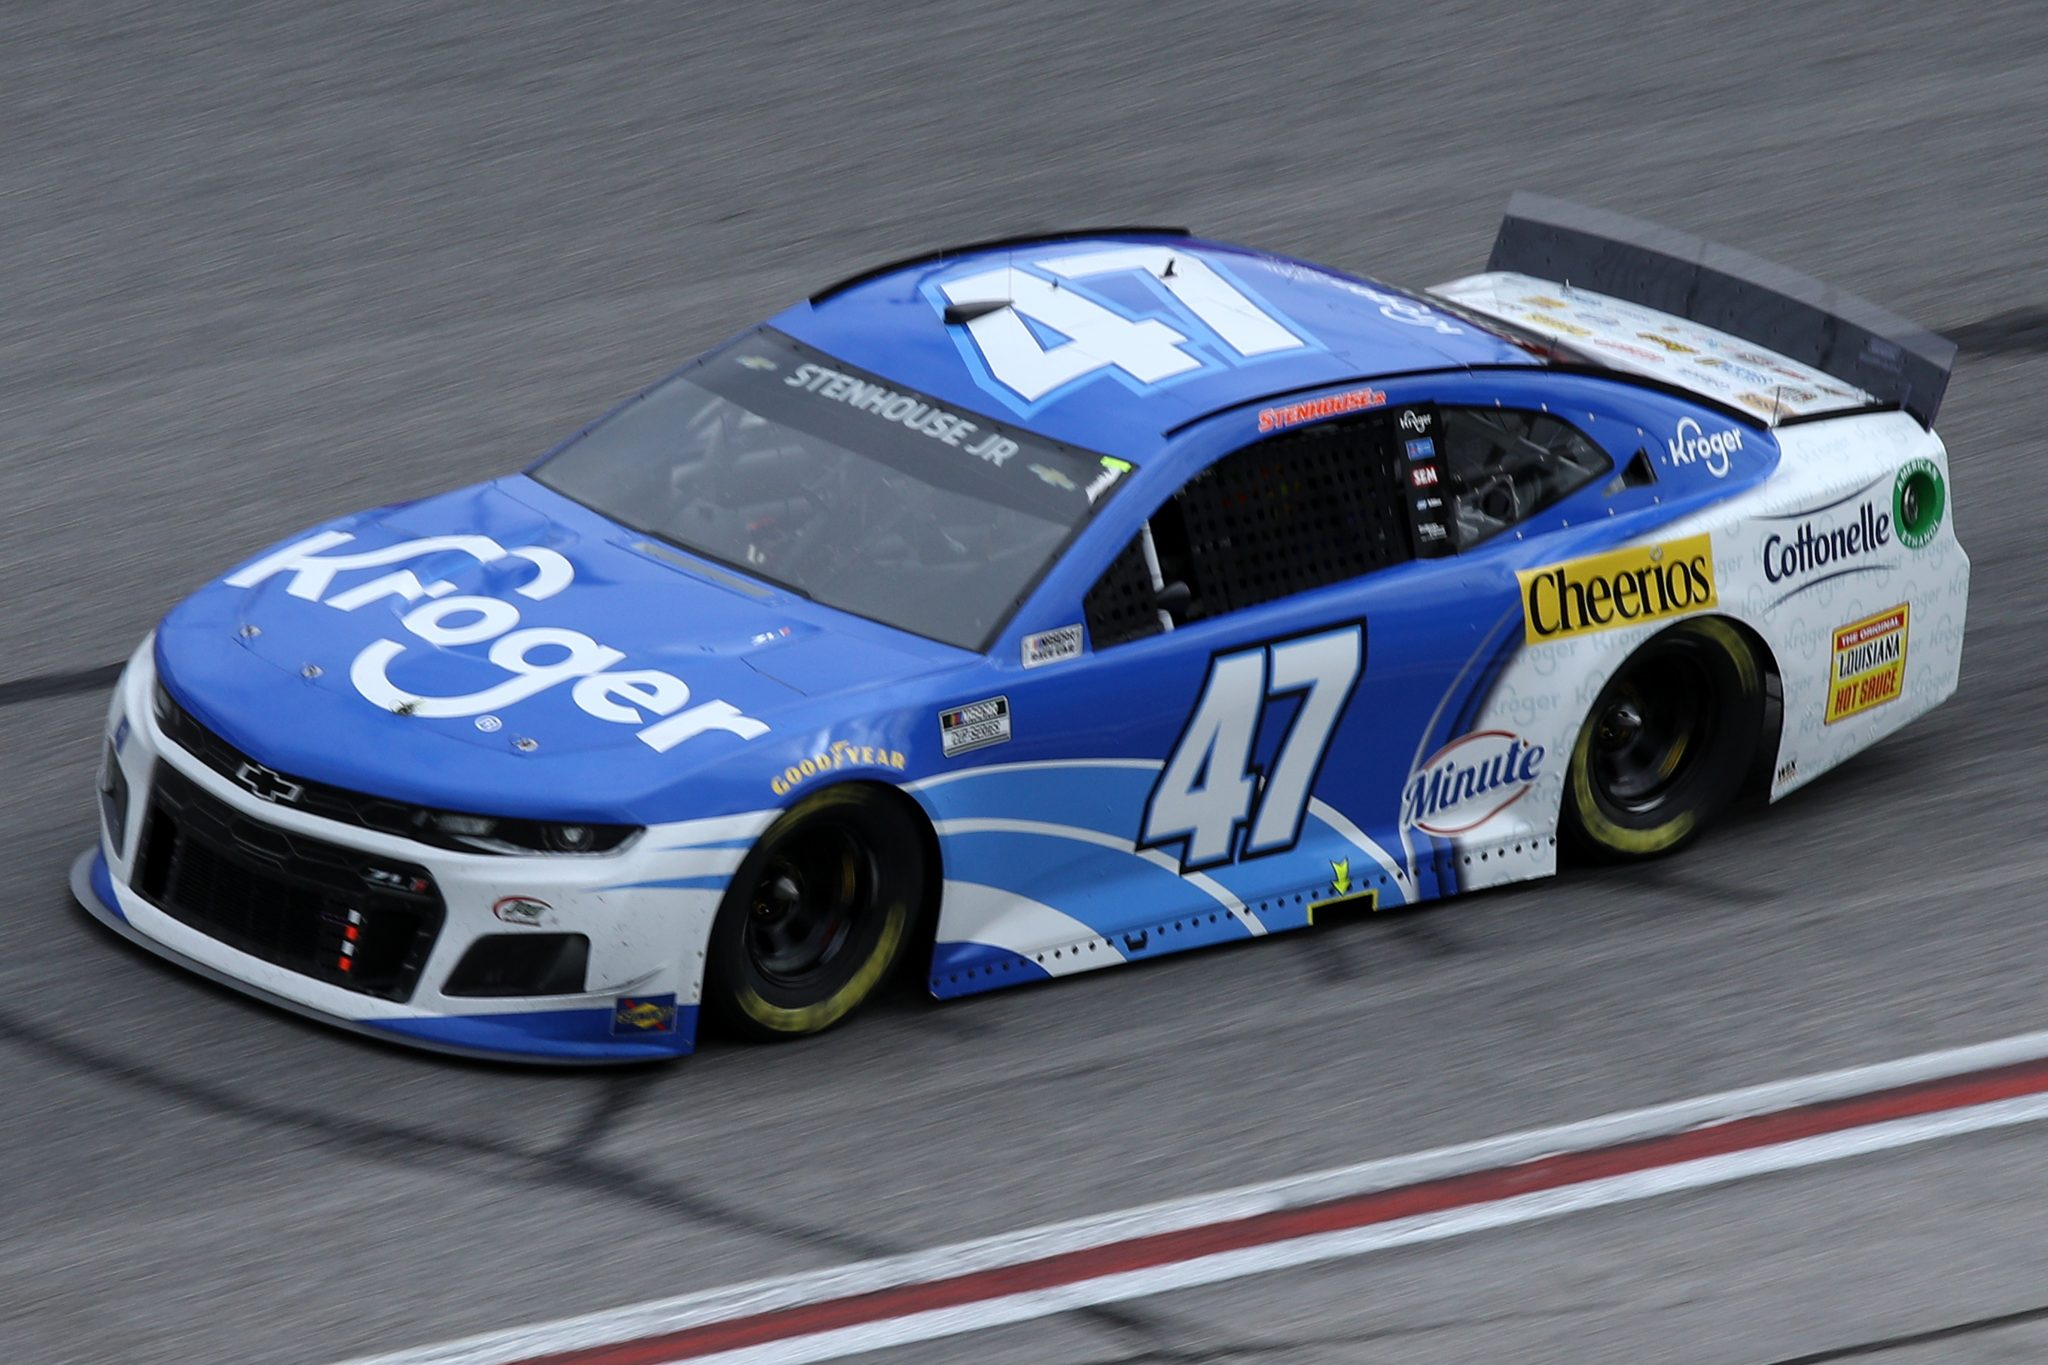 HAMPTON, GEORGIA - MARCH 21: Ricky Stenhouse Jr., driver of the #47 Kroger Chevrolet, drives during the NASCAR Cup Series Folds of Honor QuikTrip 500 at Atlanta Motor Speedway on March 21, 2021 in Hampton, Georgia. (Photo by Sean Gardner/Getty Images) | Getty Images